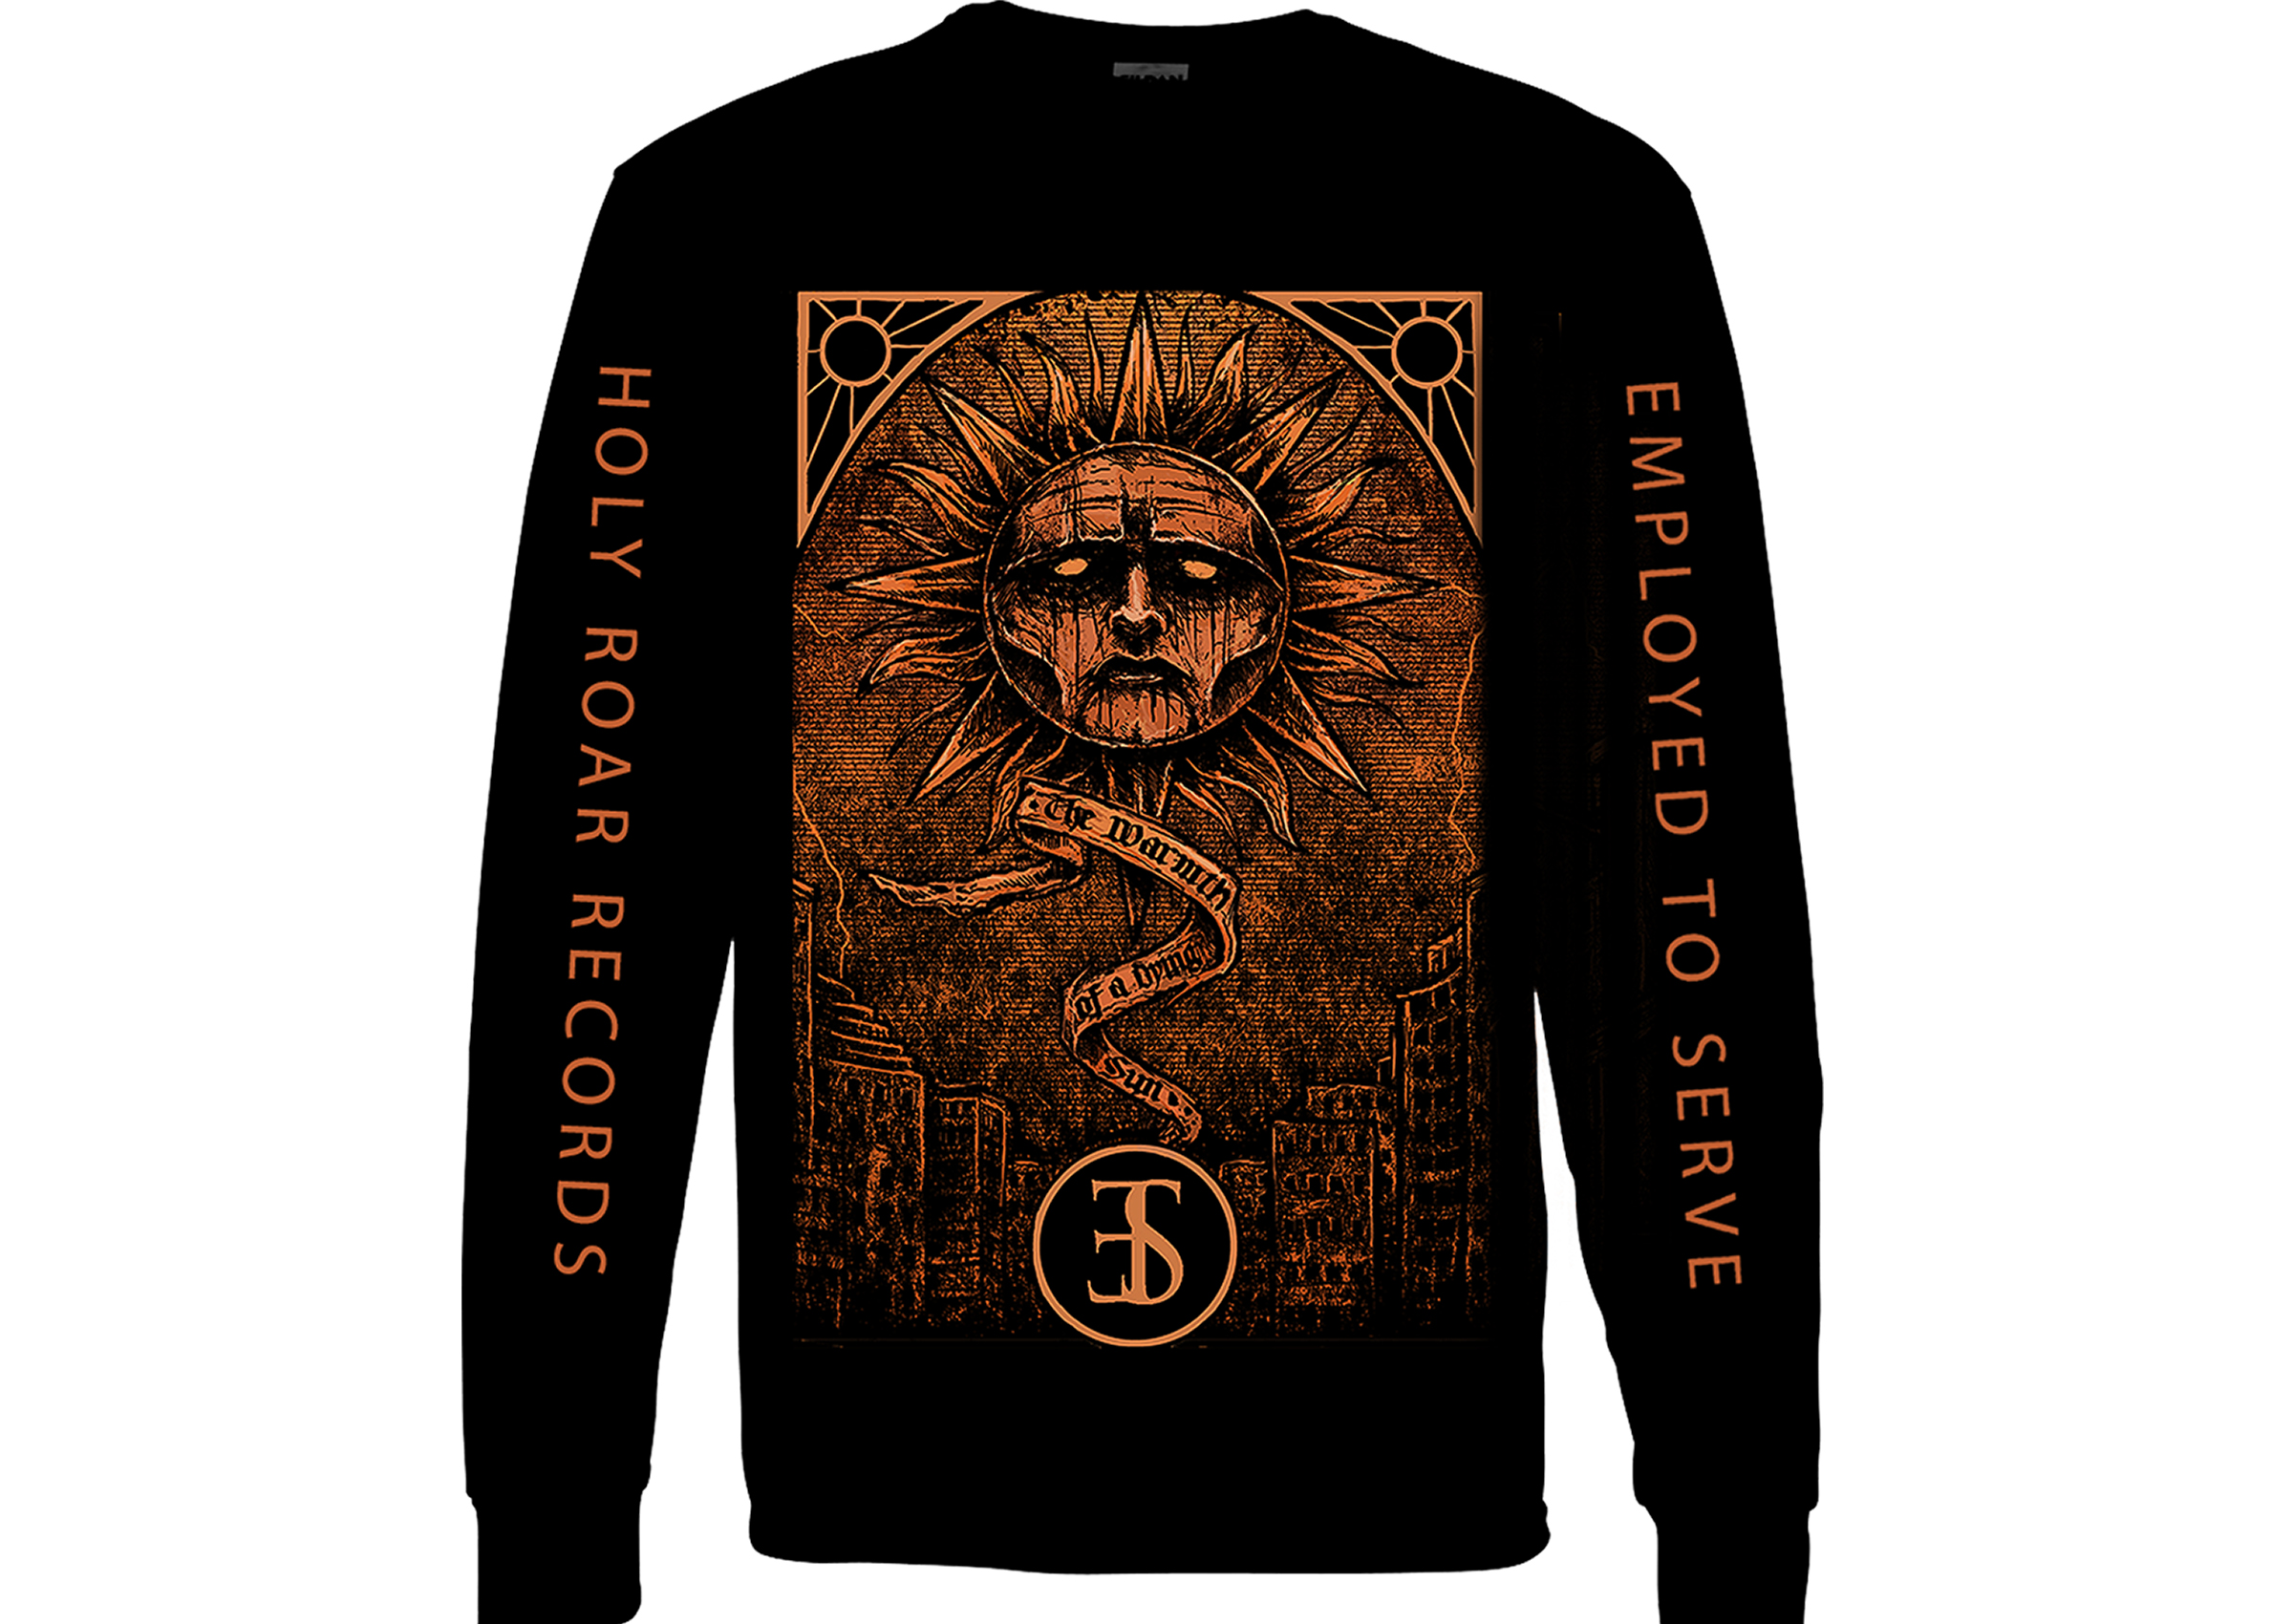 Employed To Serve - The Warmth Of A Dying Sun longsleeve